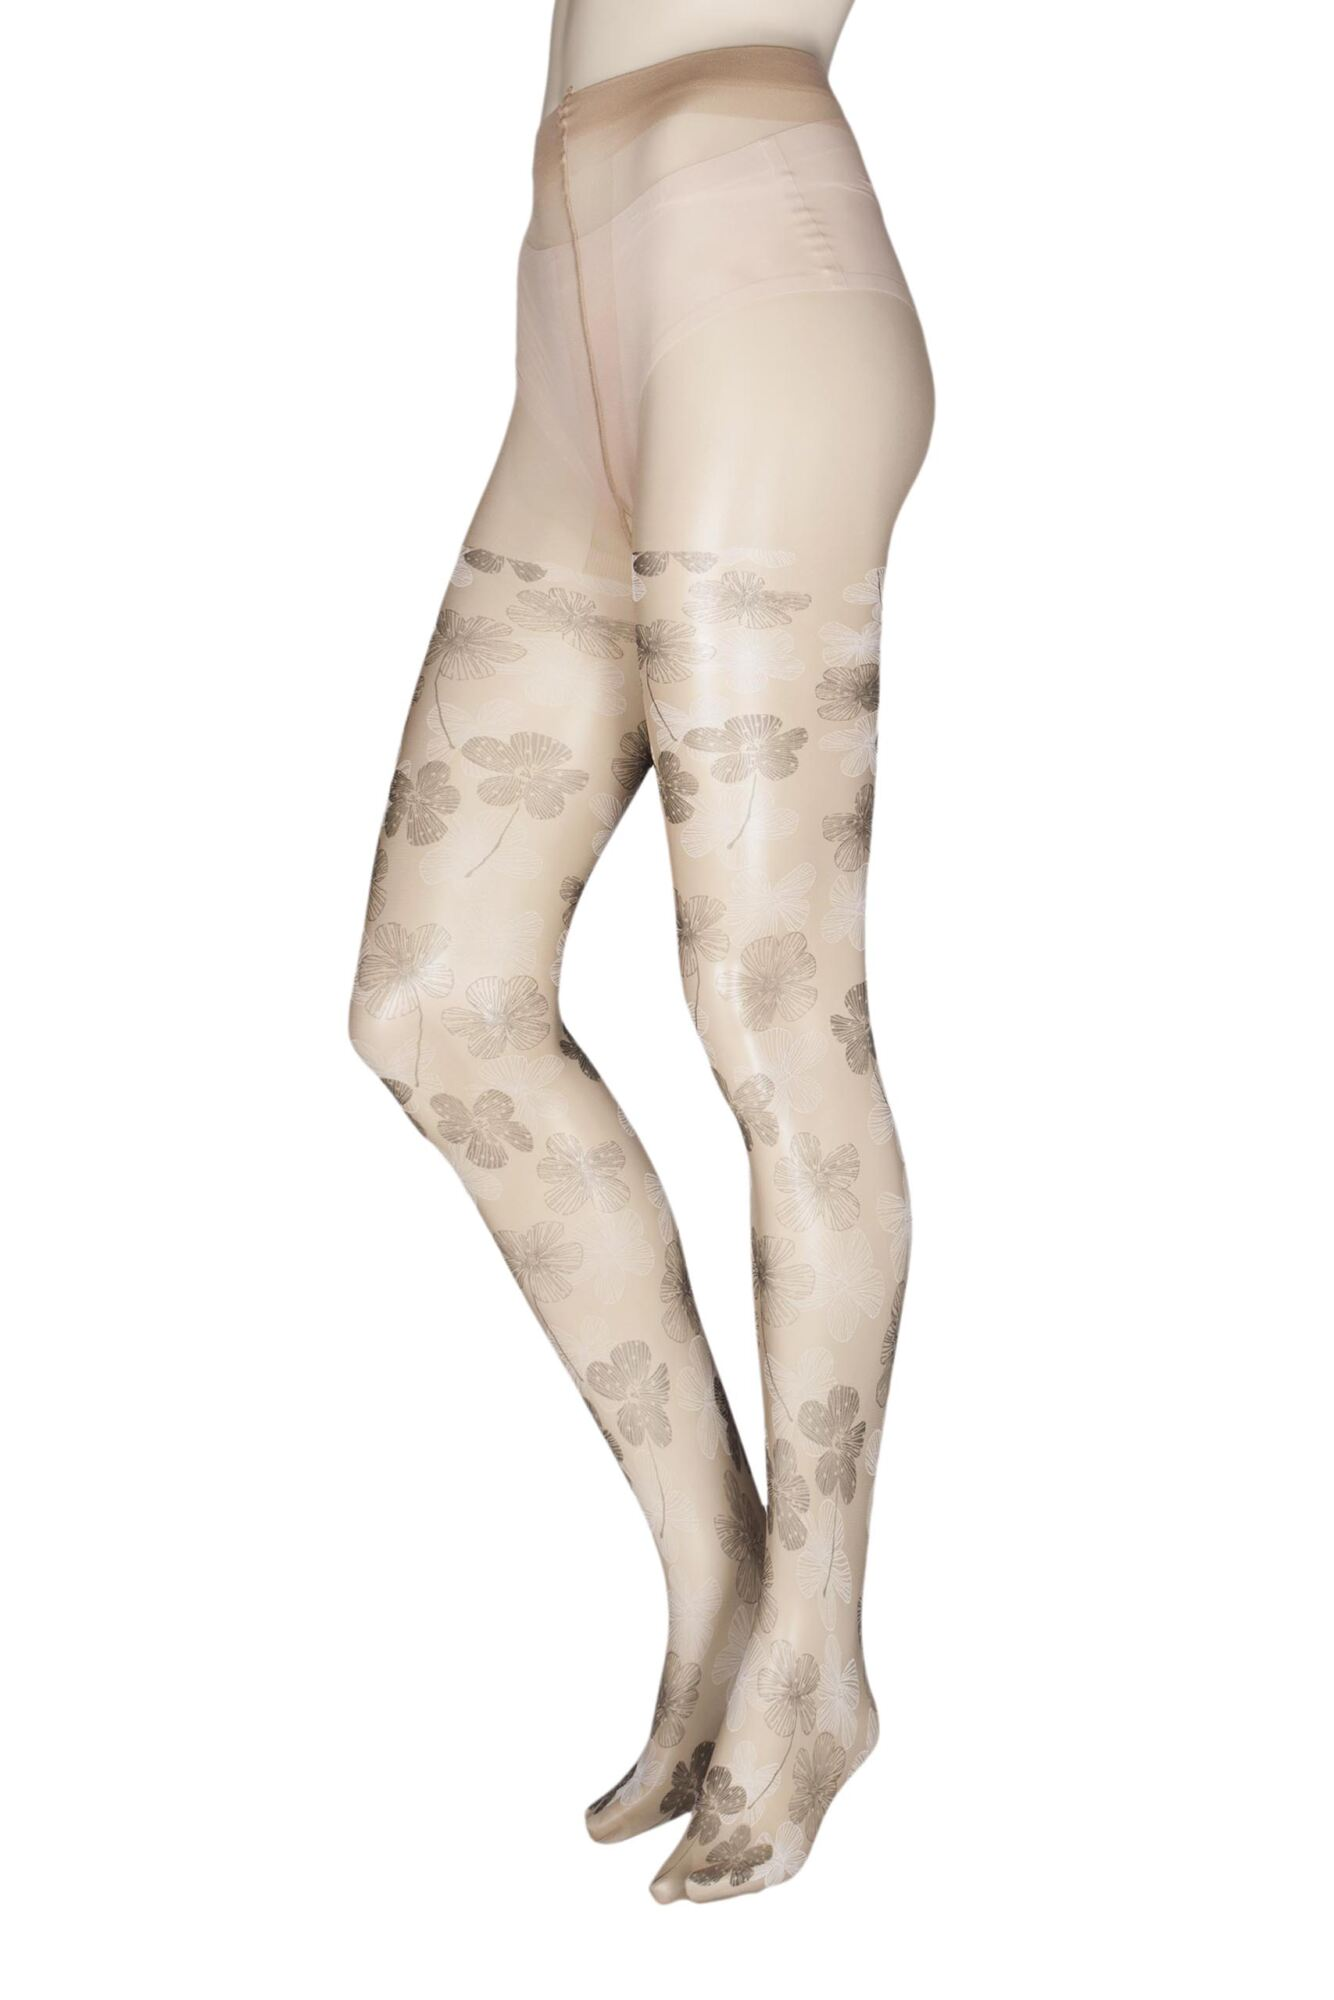 1 Pair Waterlily Flowers Tights Ladies - Trasparenze